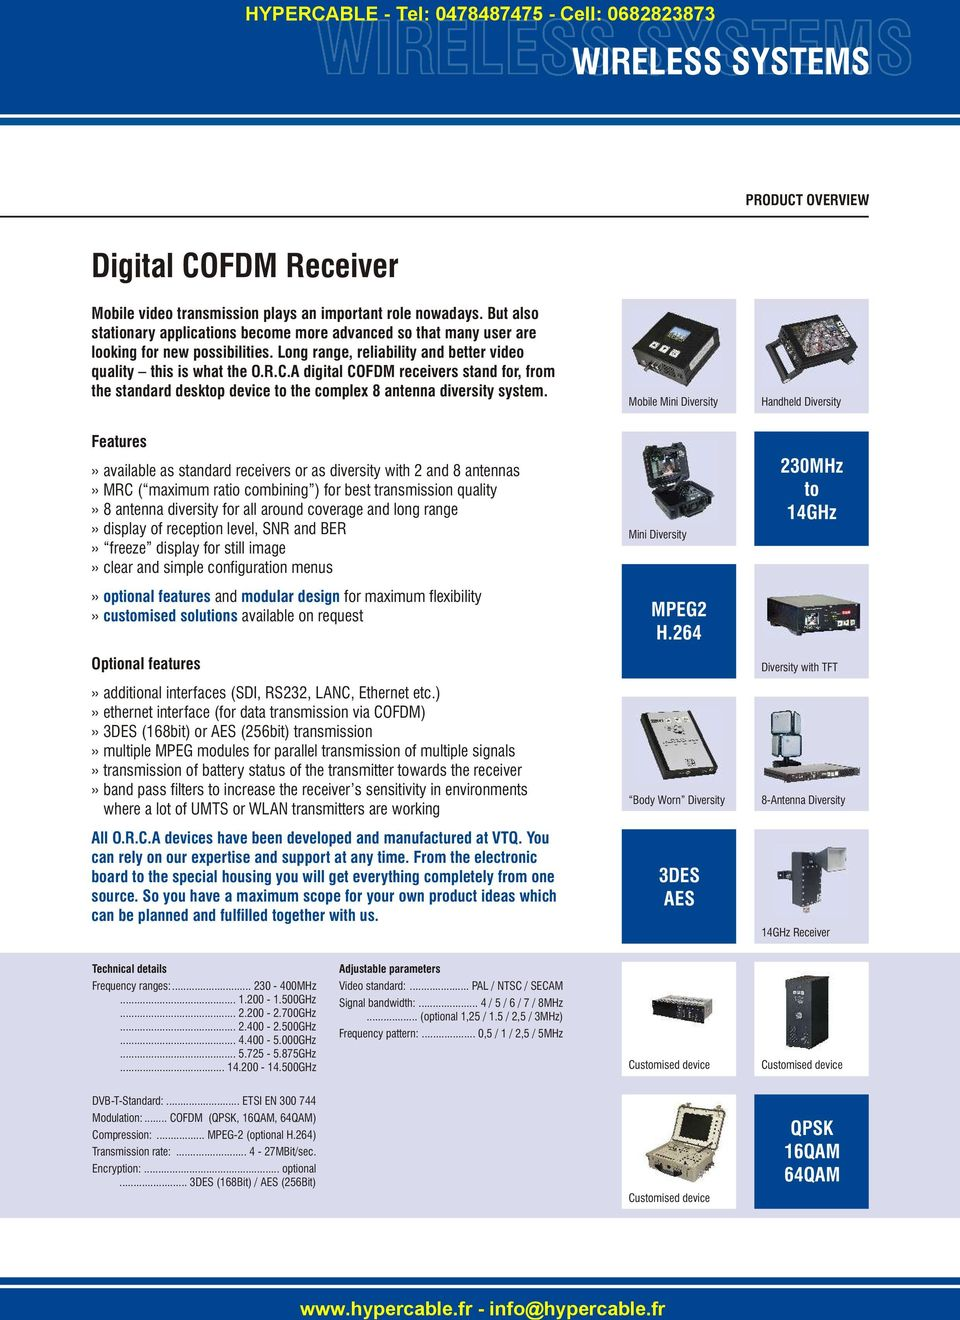 A digital COFDM receivers stand for, from the standard desktop device to the complex 8 antenna diversity system.